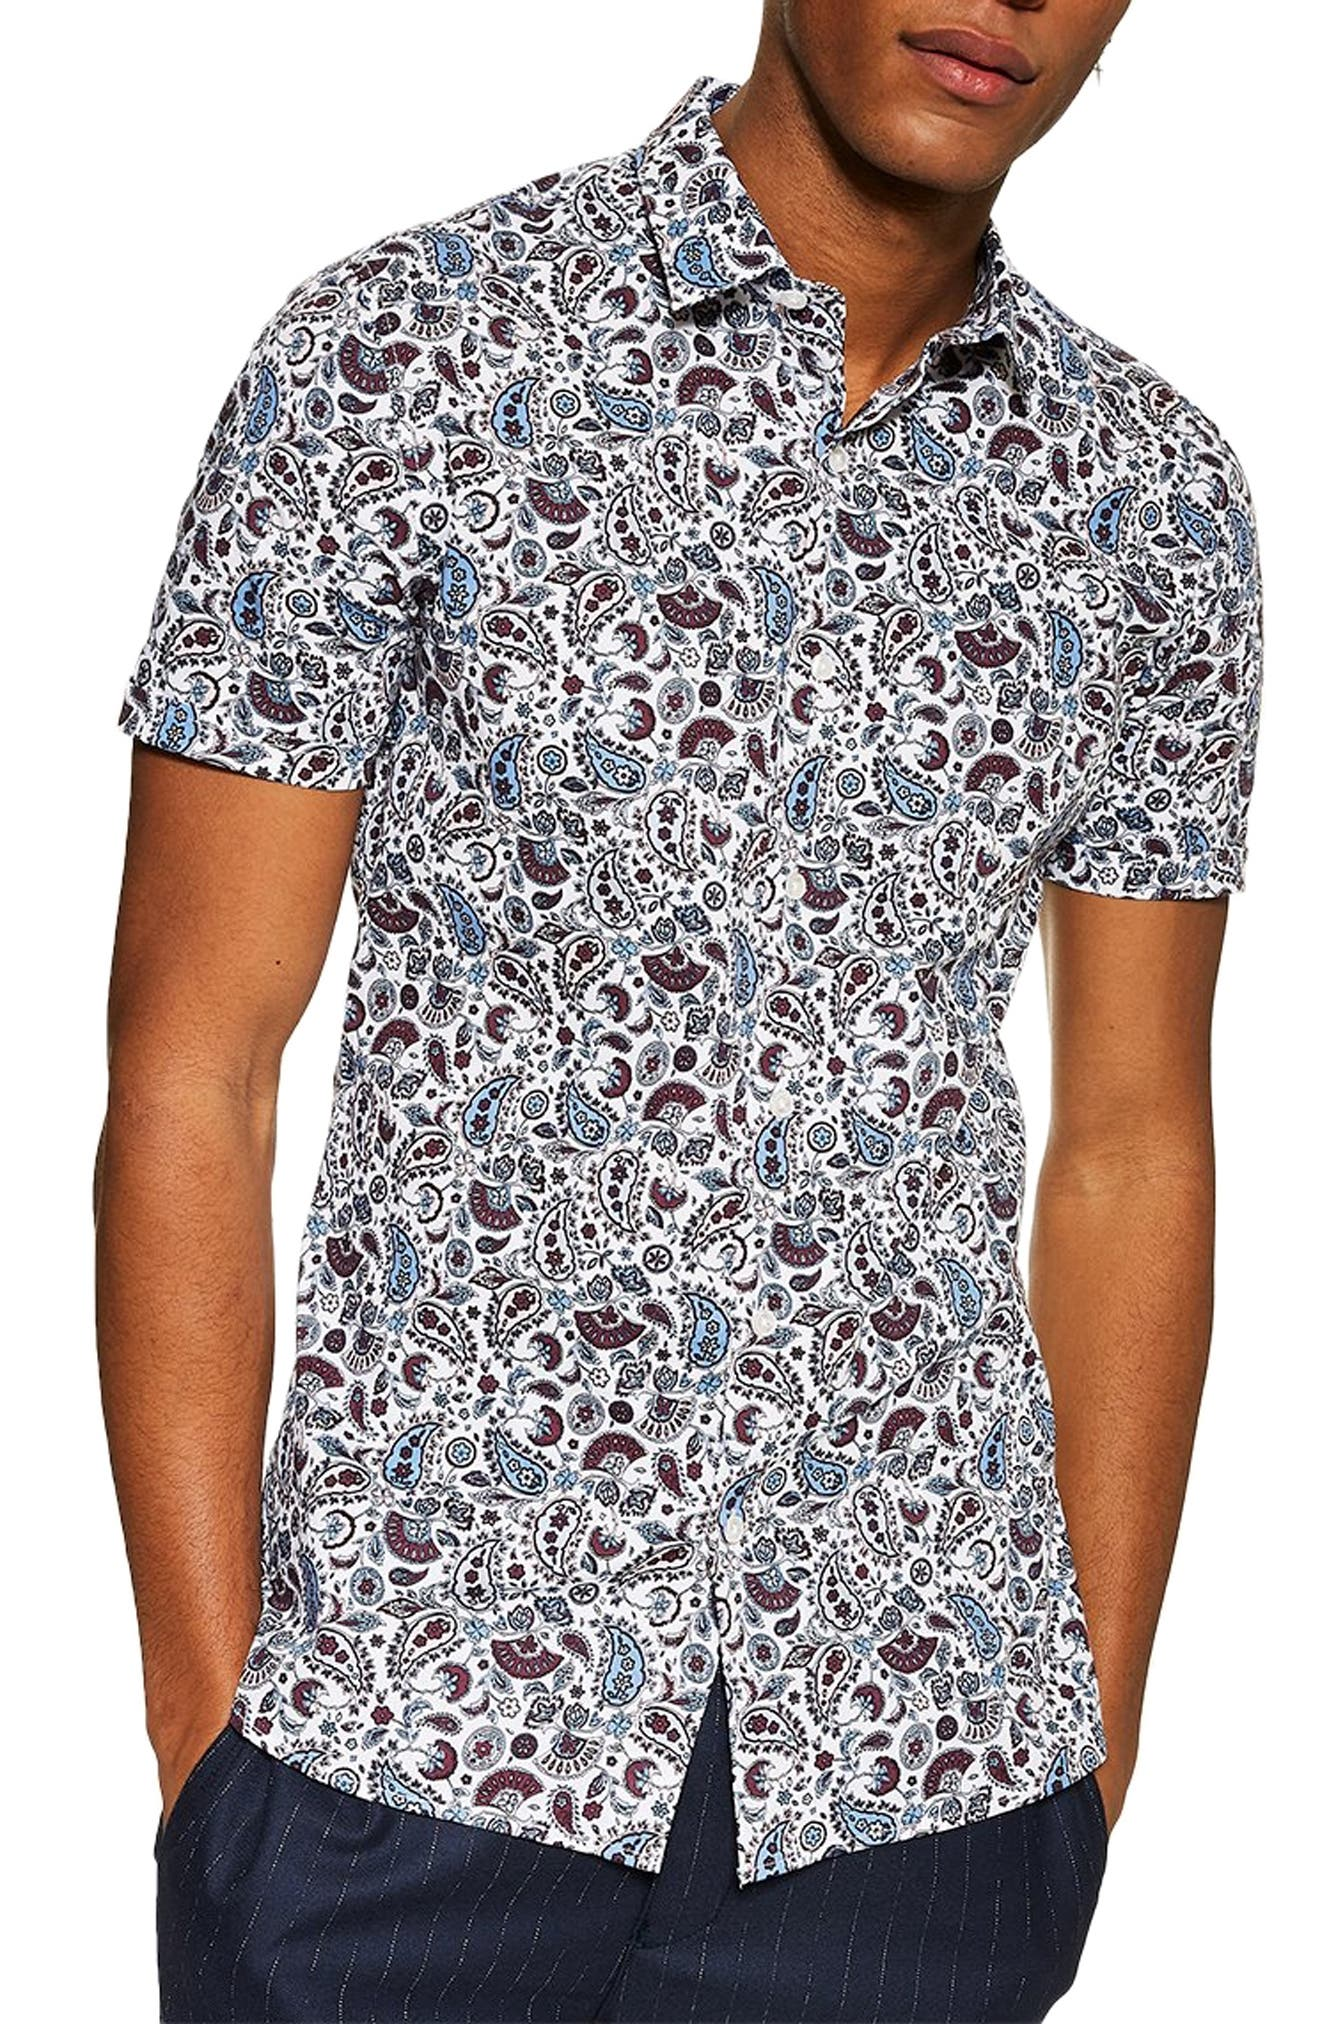 TOPMAN, Paisley Print Slim Fit Shirt, Main thumbnail 1, color, BLUE MULTI